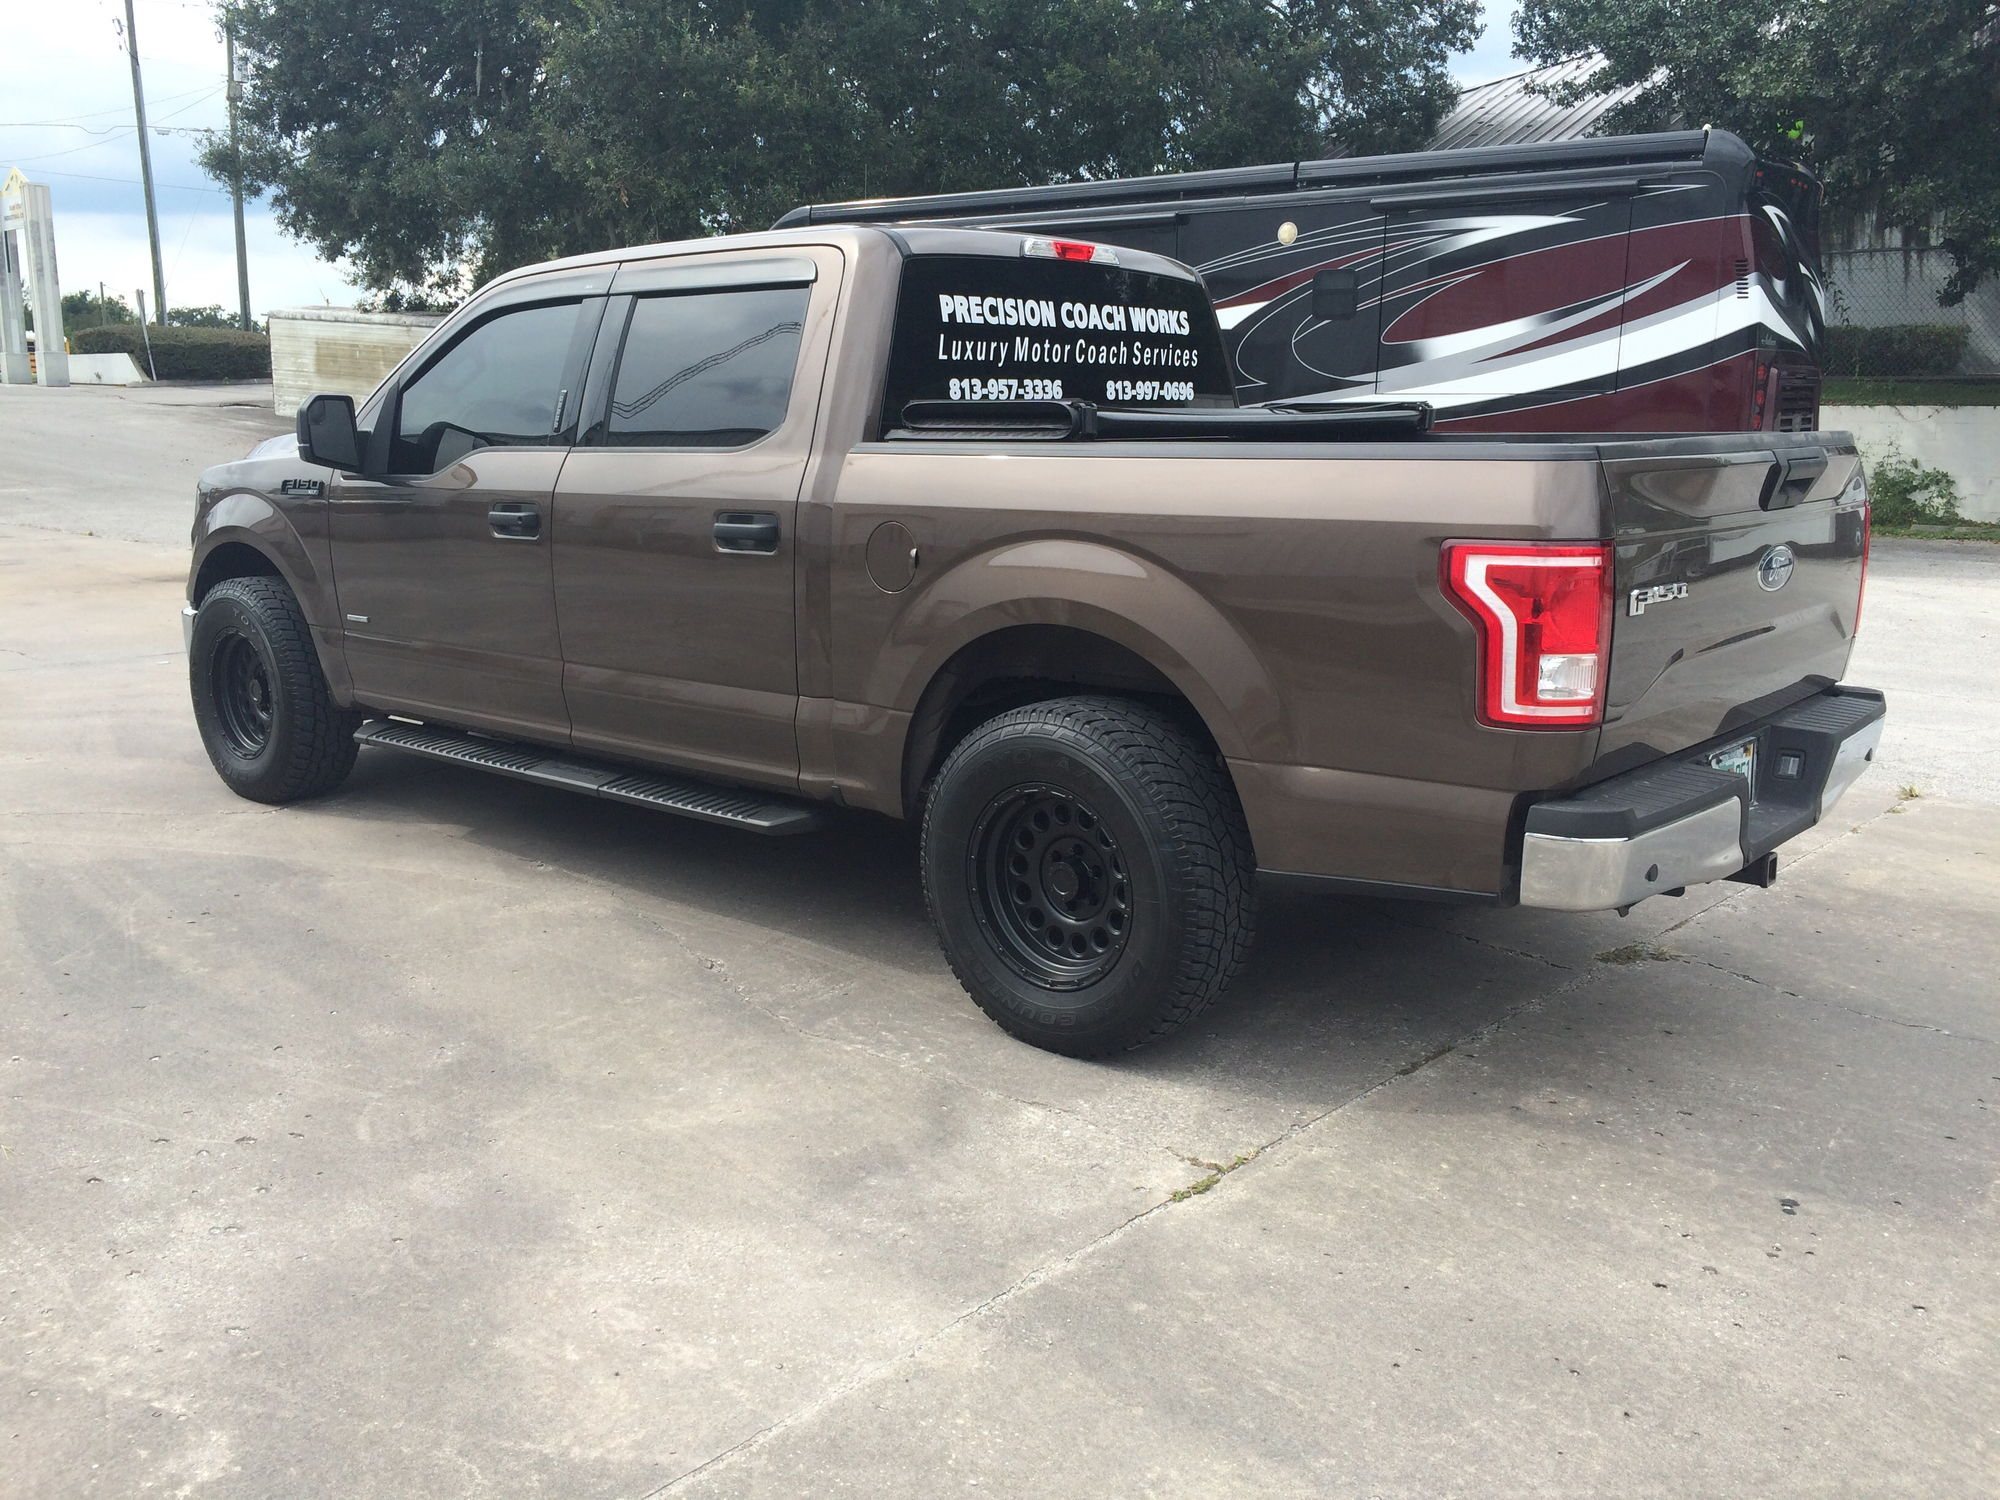 X4 Leveling Kit >> Post 2015+ XLT pictures ! - Page 2 - Ford F150 Forum ...